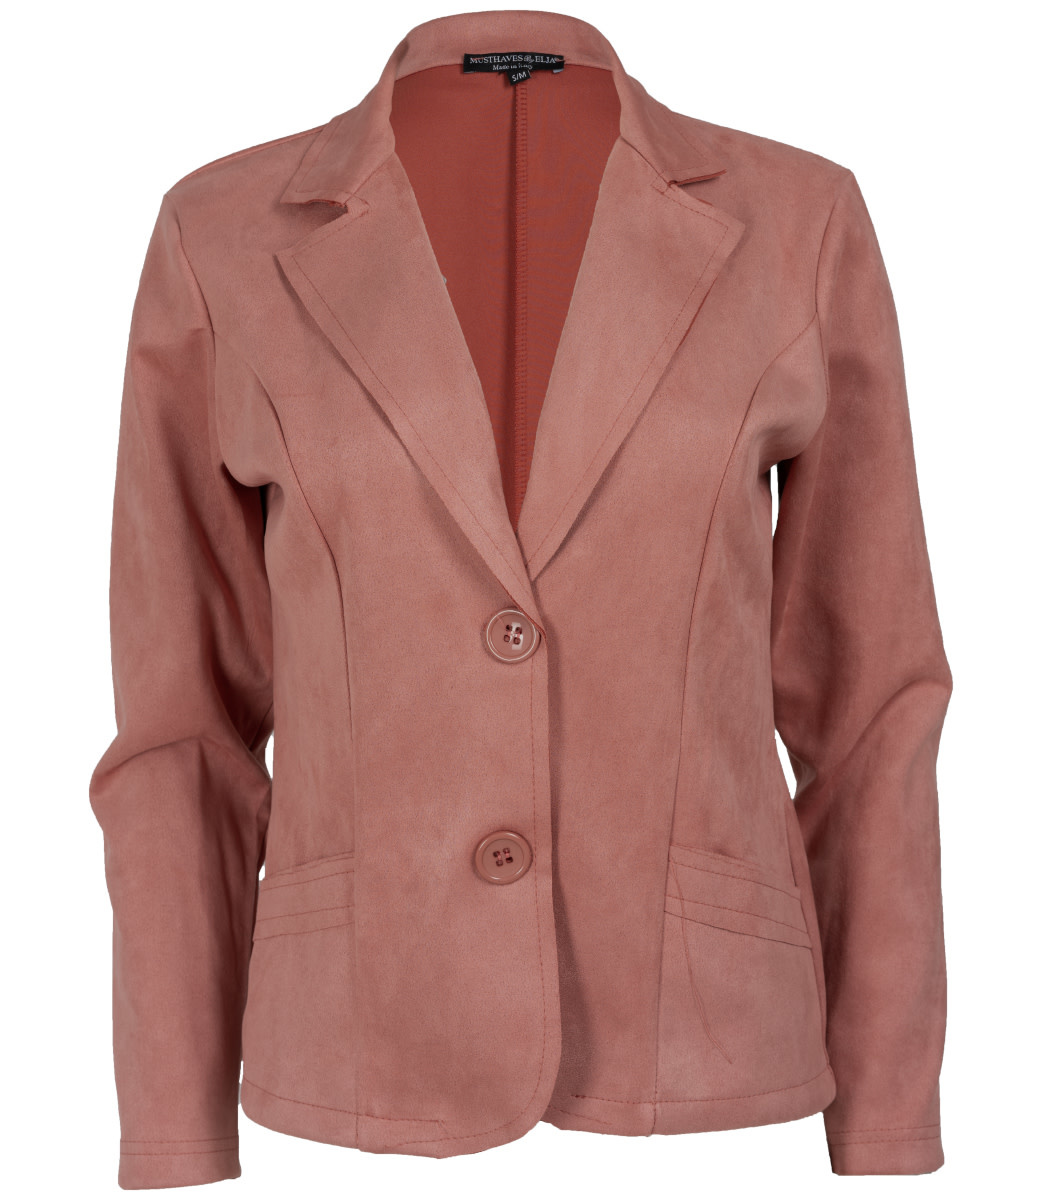 Wannahavesfashion Blazer pepper rosa Renee